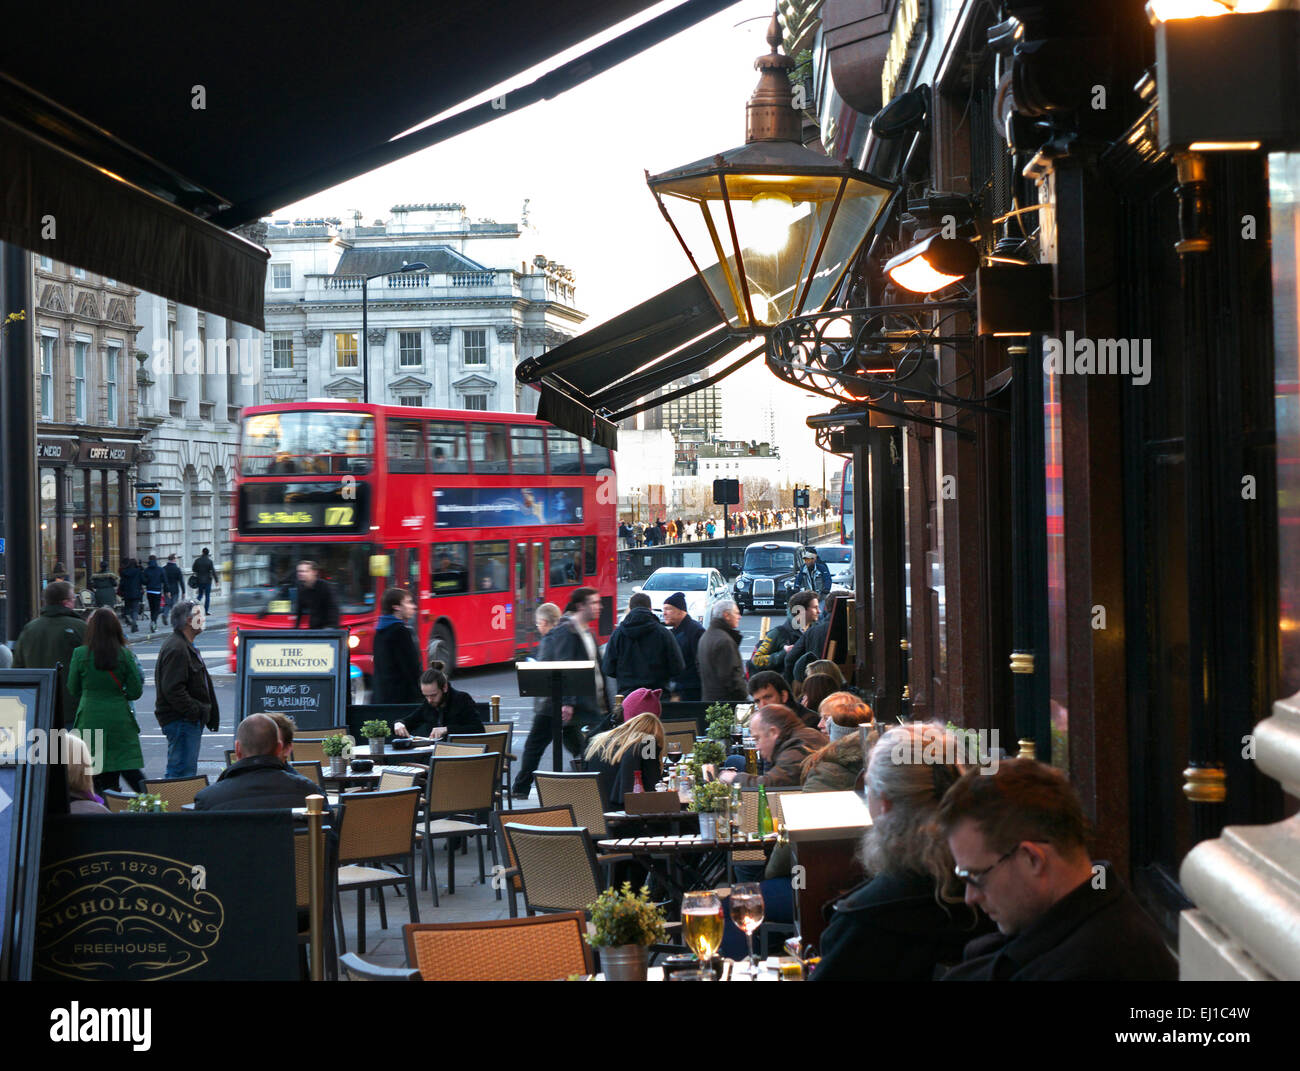 Busy dusk central London scene with red bus taxis commuters and typical real ale pub in foreground The Strand London - Stock Image